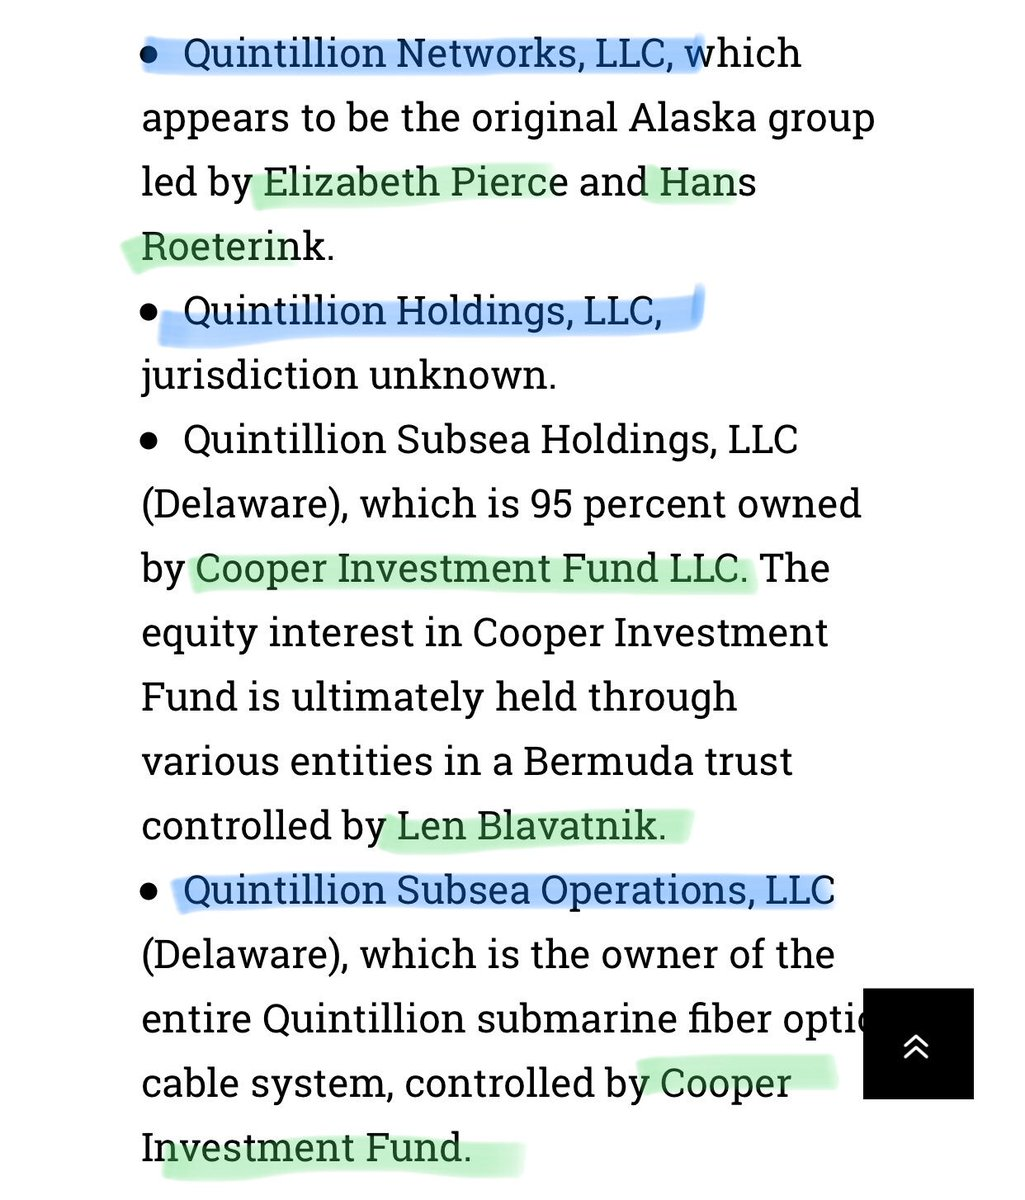 😳It's going to be exhausting to explain just how nervous we need to be about the group involved in this fiber optic deal... @FBI @NSAGov @MingGao26 I hope that you are on this, like NOW🔥